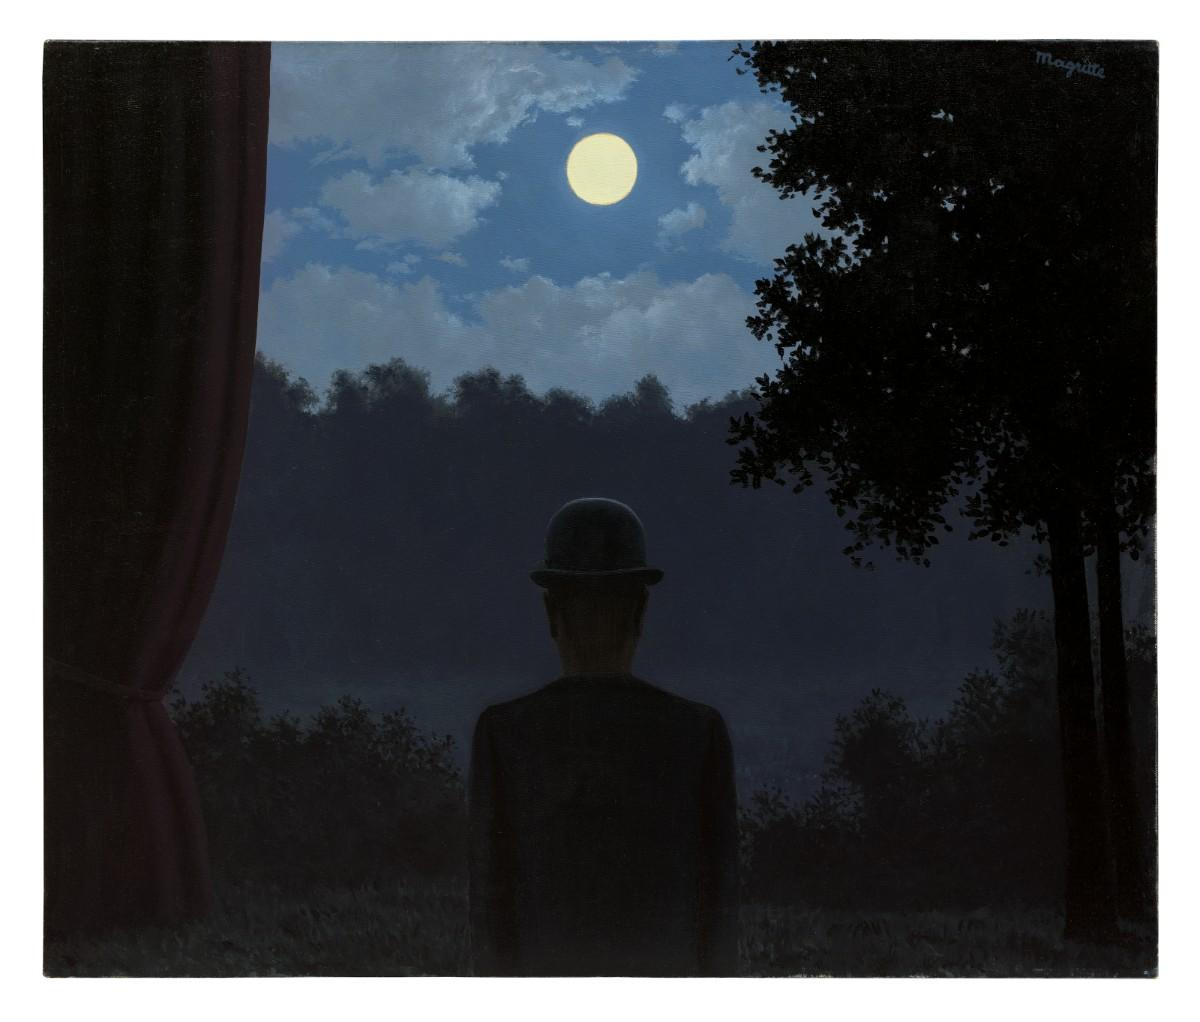 Rene Magritte painting of a man in a bowler hat silhouetted against trees at night with a full moon above